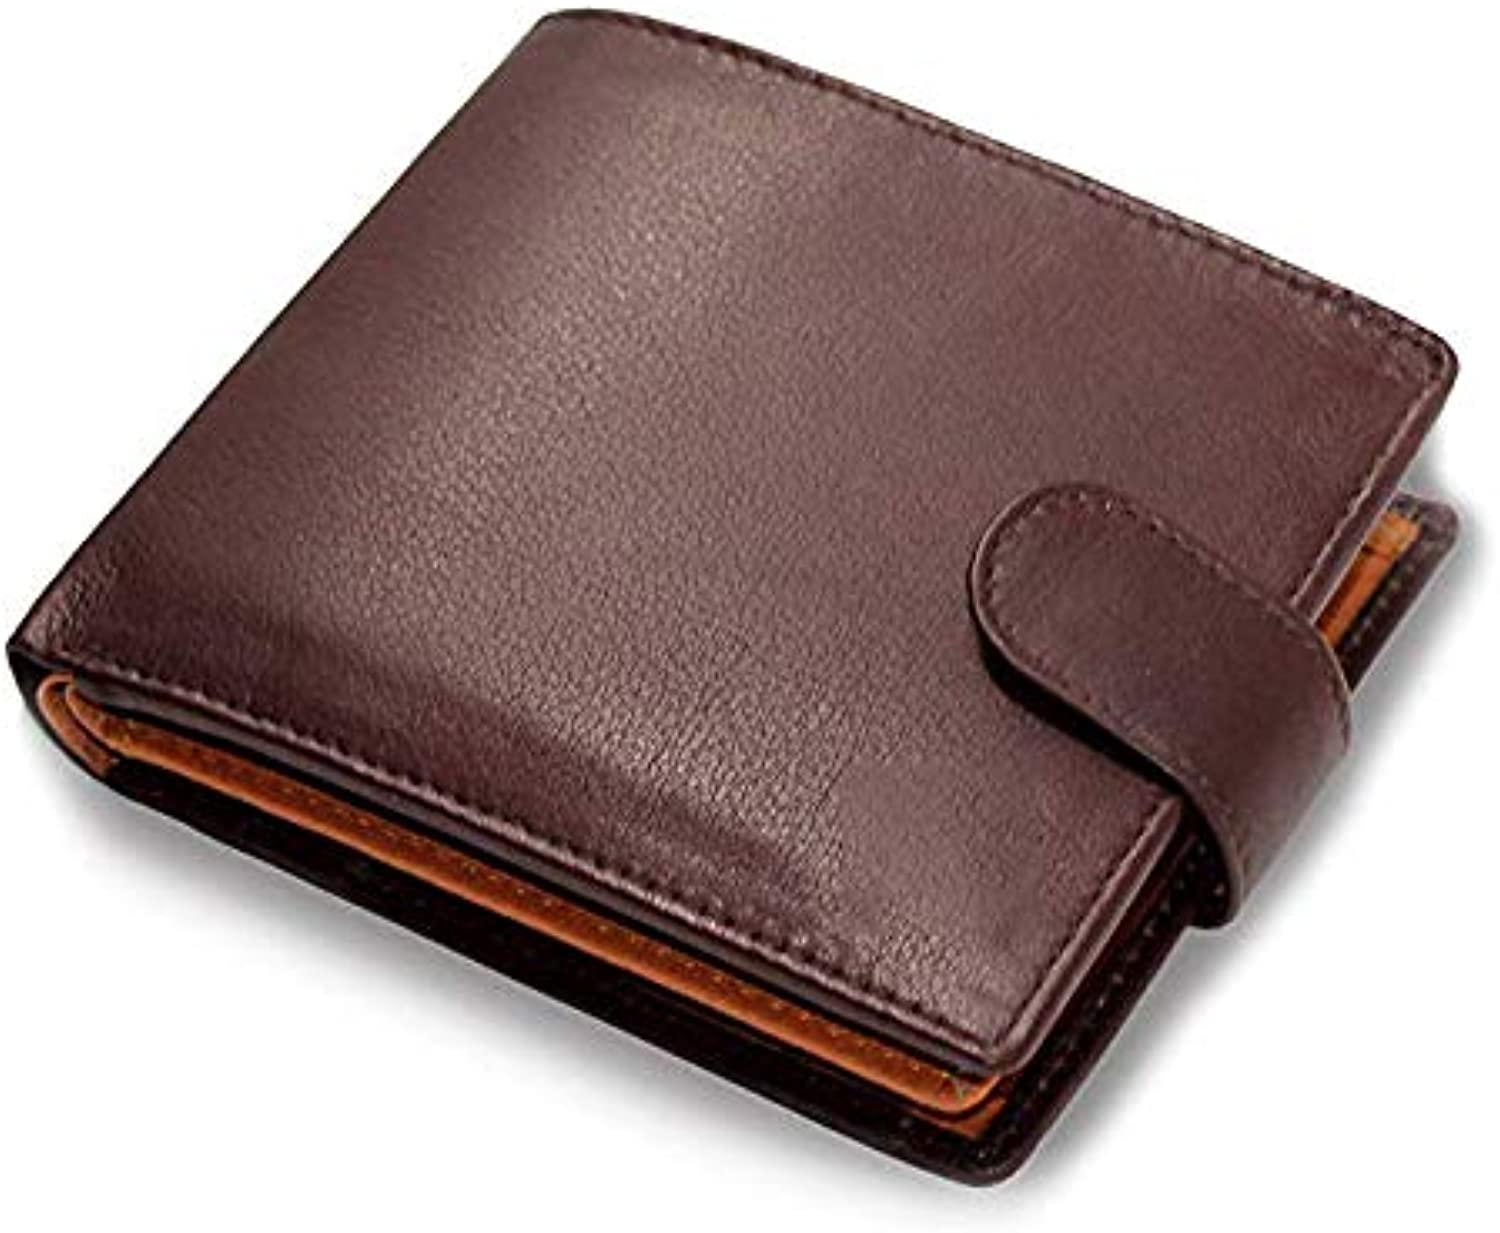 Brown Real Soft Leather Wallet with Genuine Leather Large Zip Coin Pocket, Predection Luxury Soft Genuine Leather Wallet Purse Coin Pouch Gift Boxed